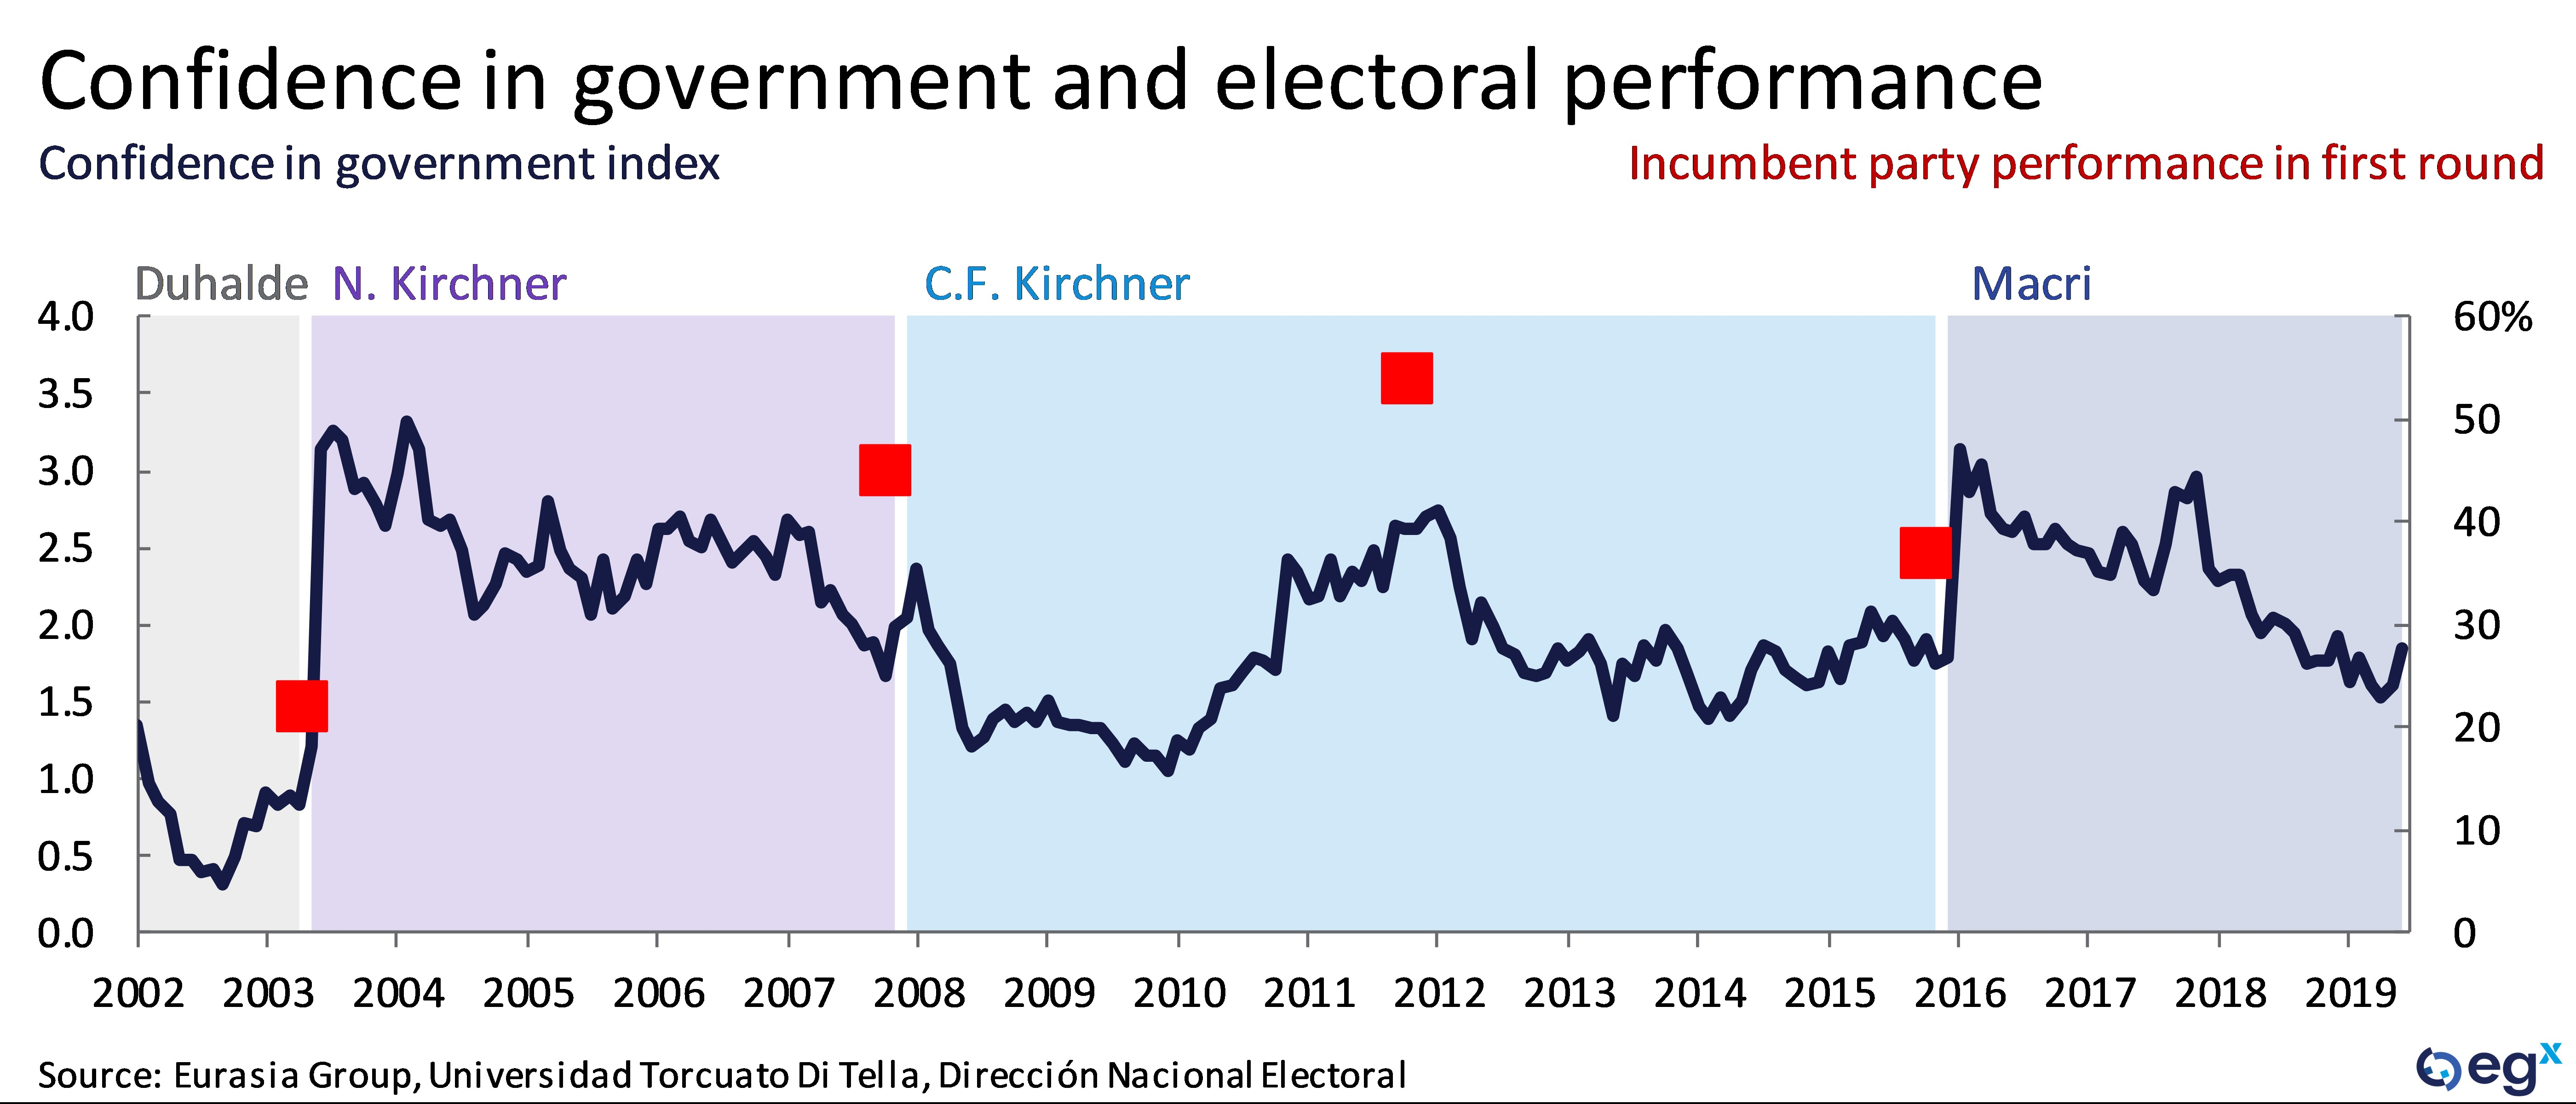 Confidence in government and electoral performance in Argentina